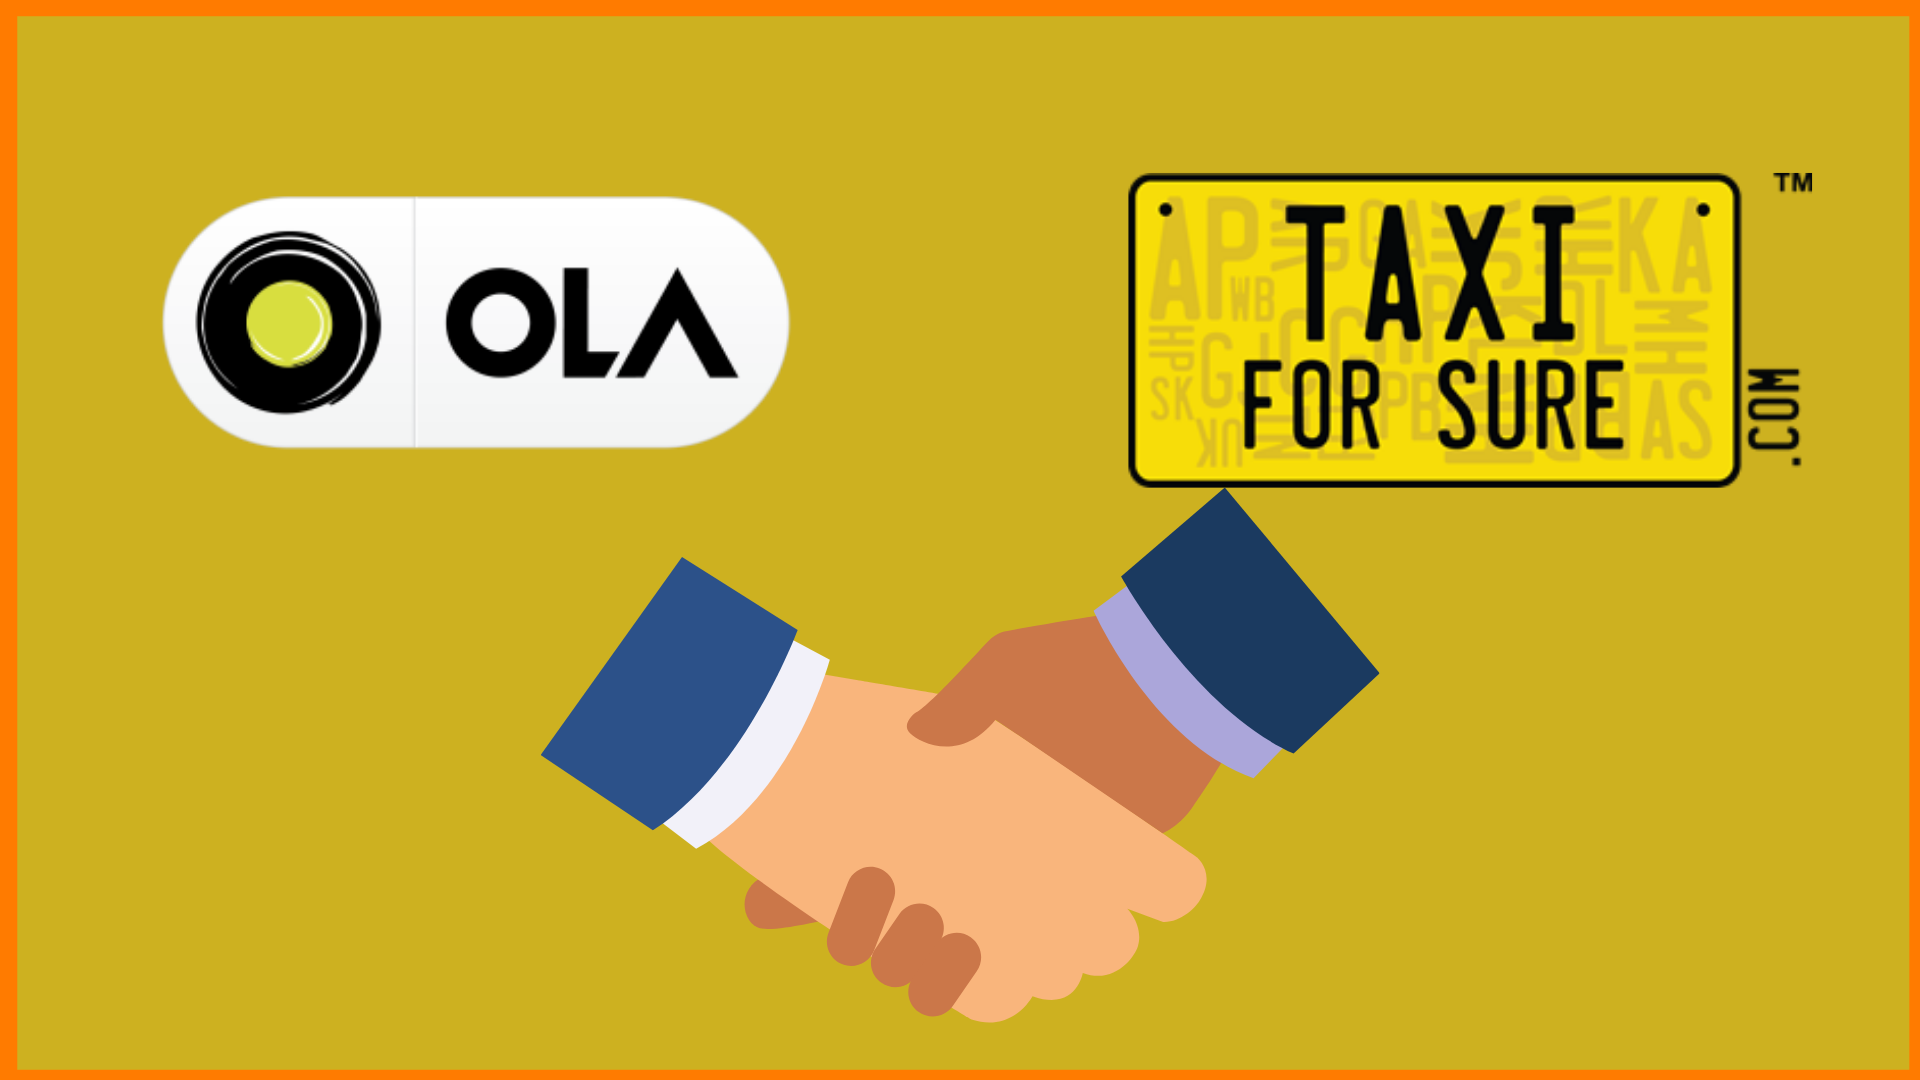 Ola and TaxiForSure Logo